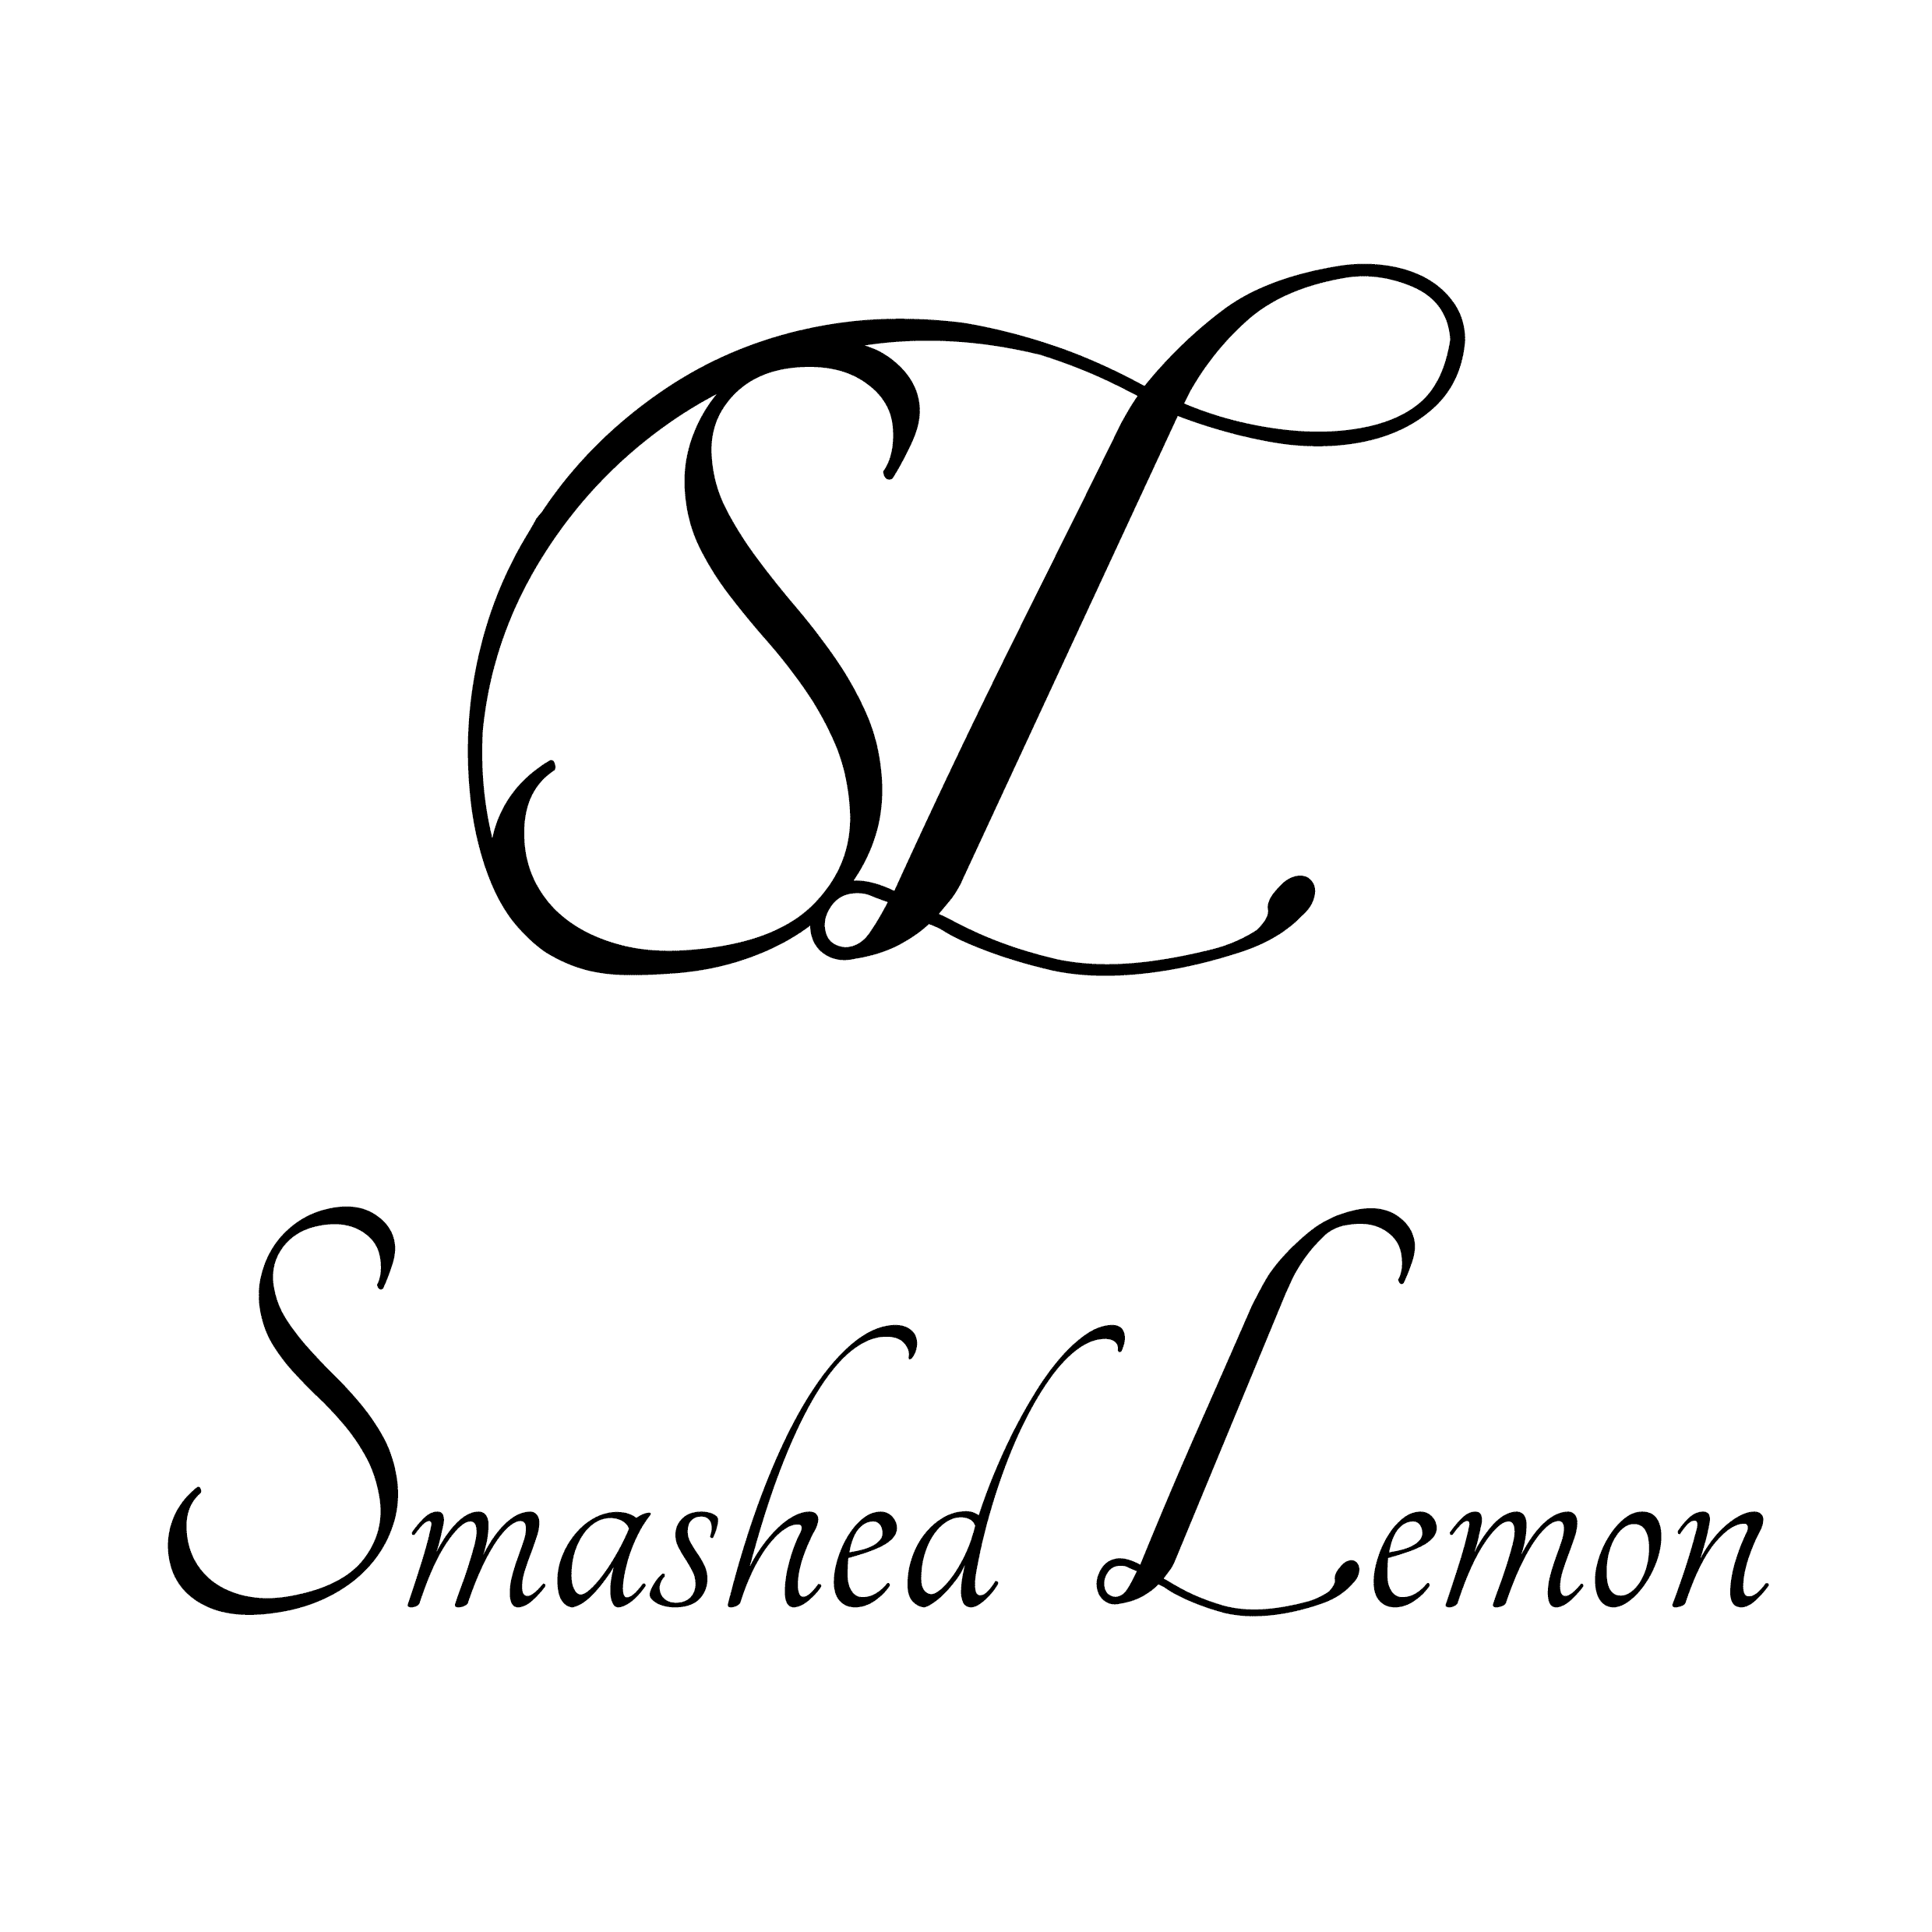 /smashed-lemon